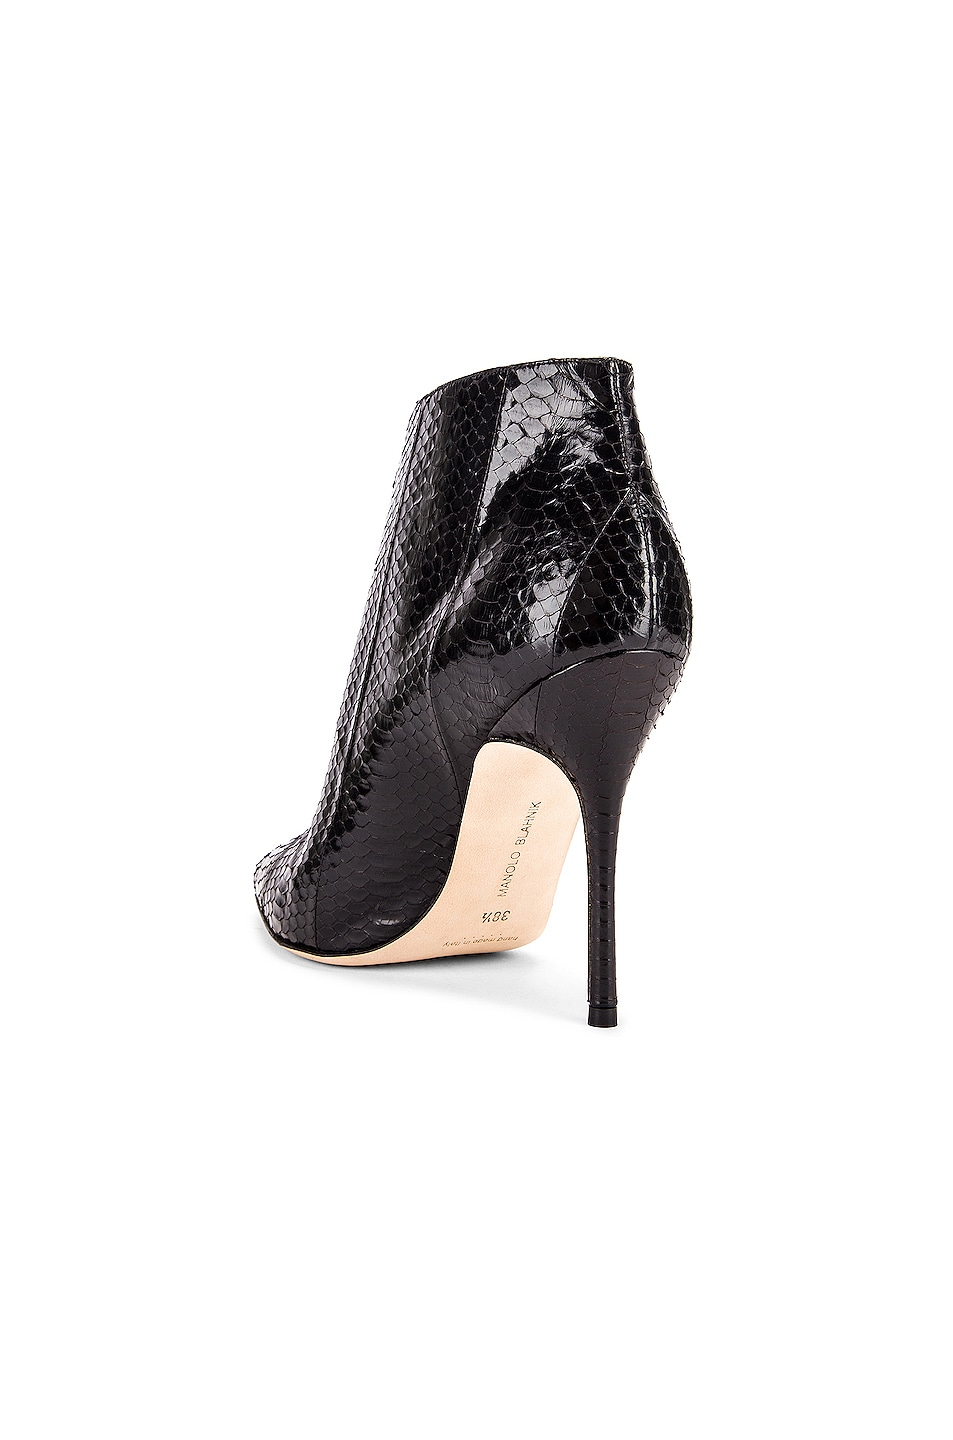 Image 3 of Manolo Blahnik Ifima 105 Bootie in Black Snake